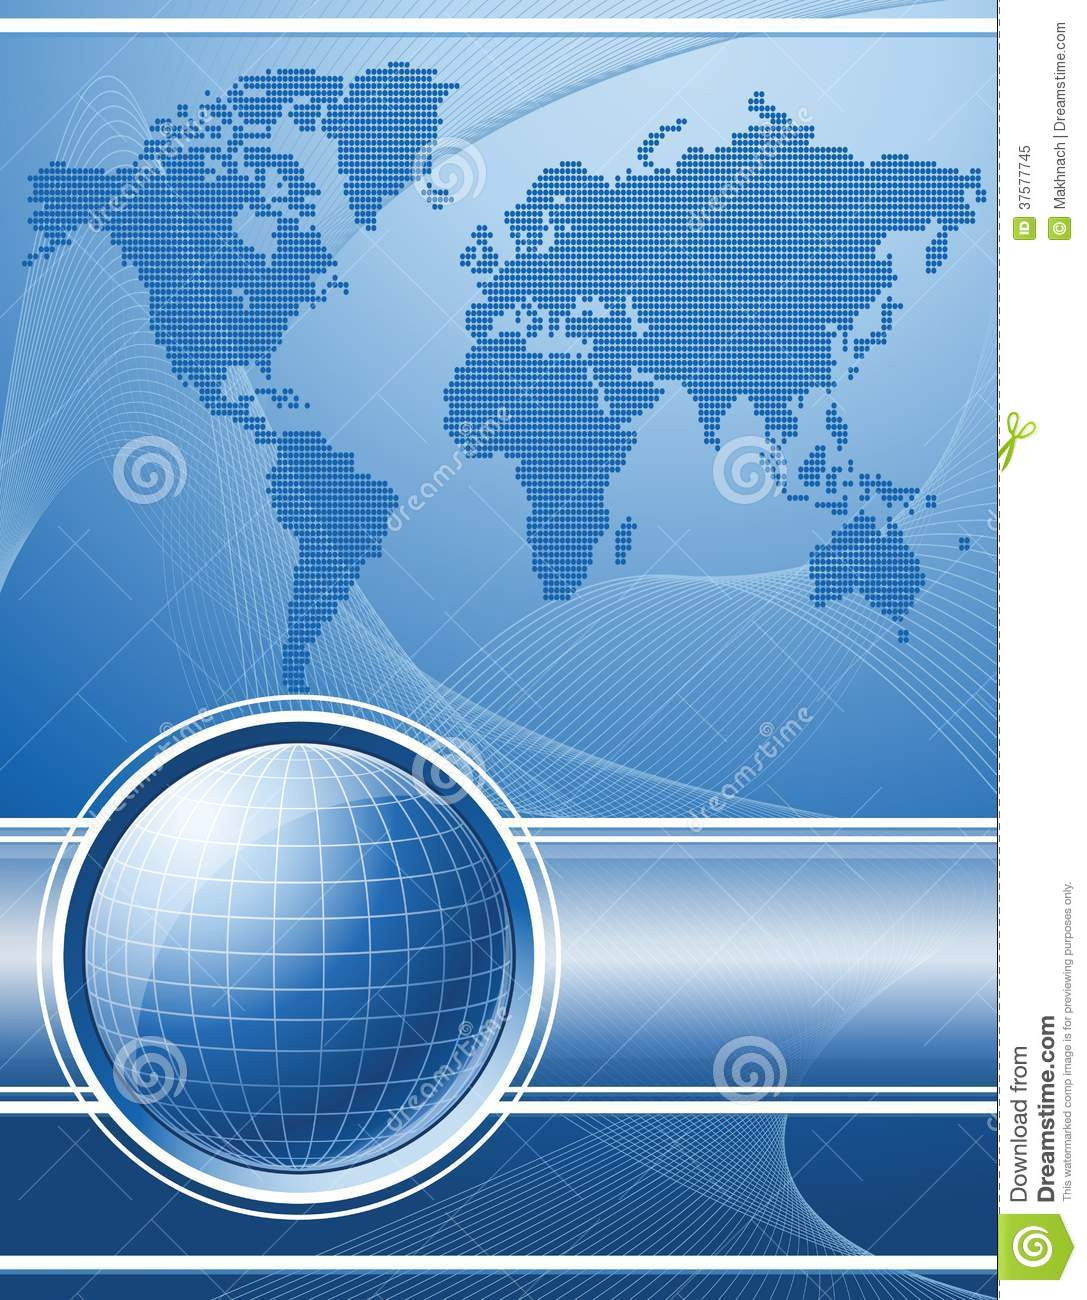 Blue background with globe and world map